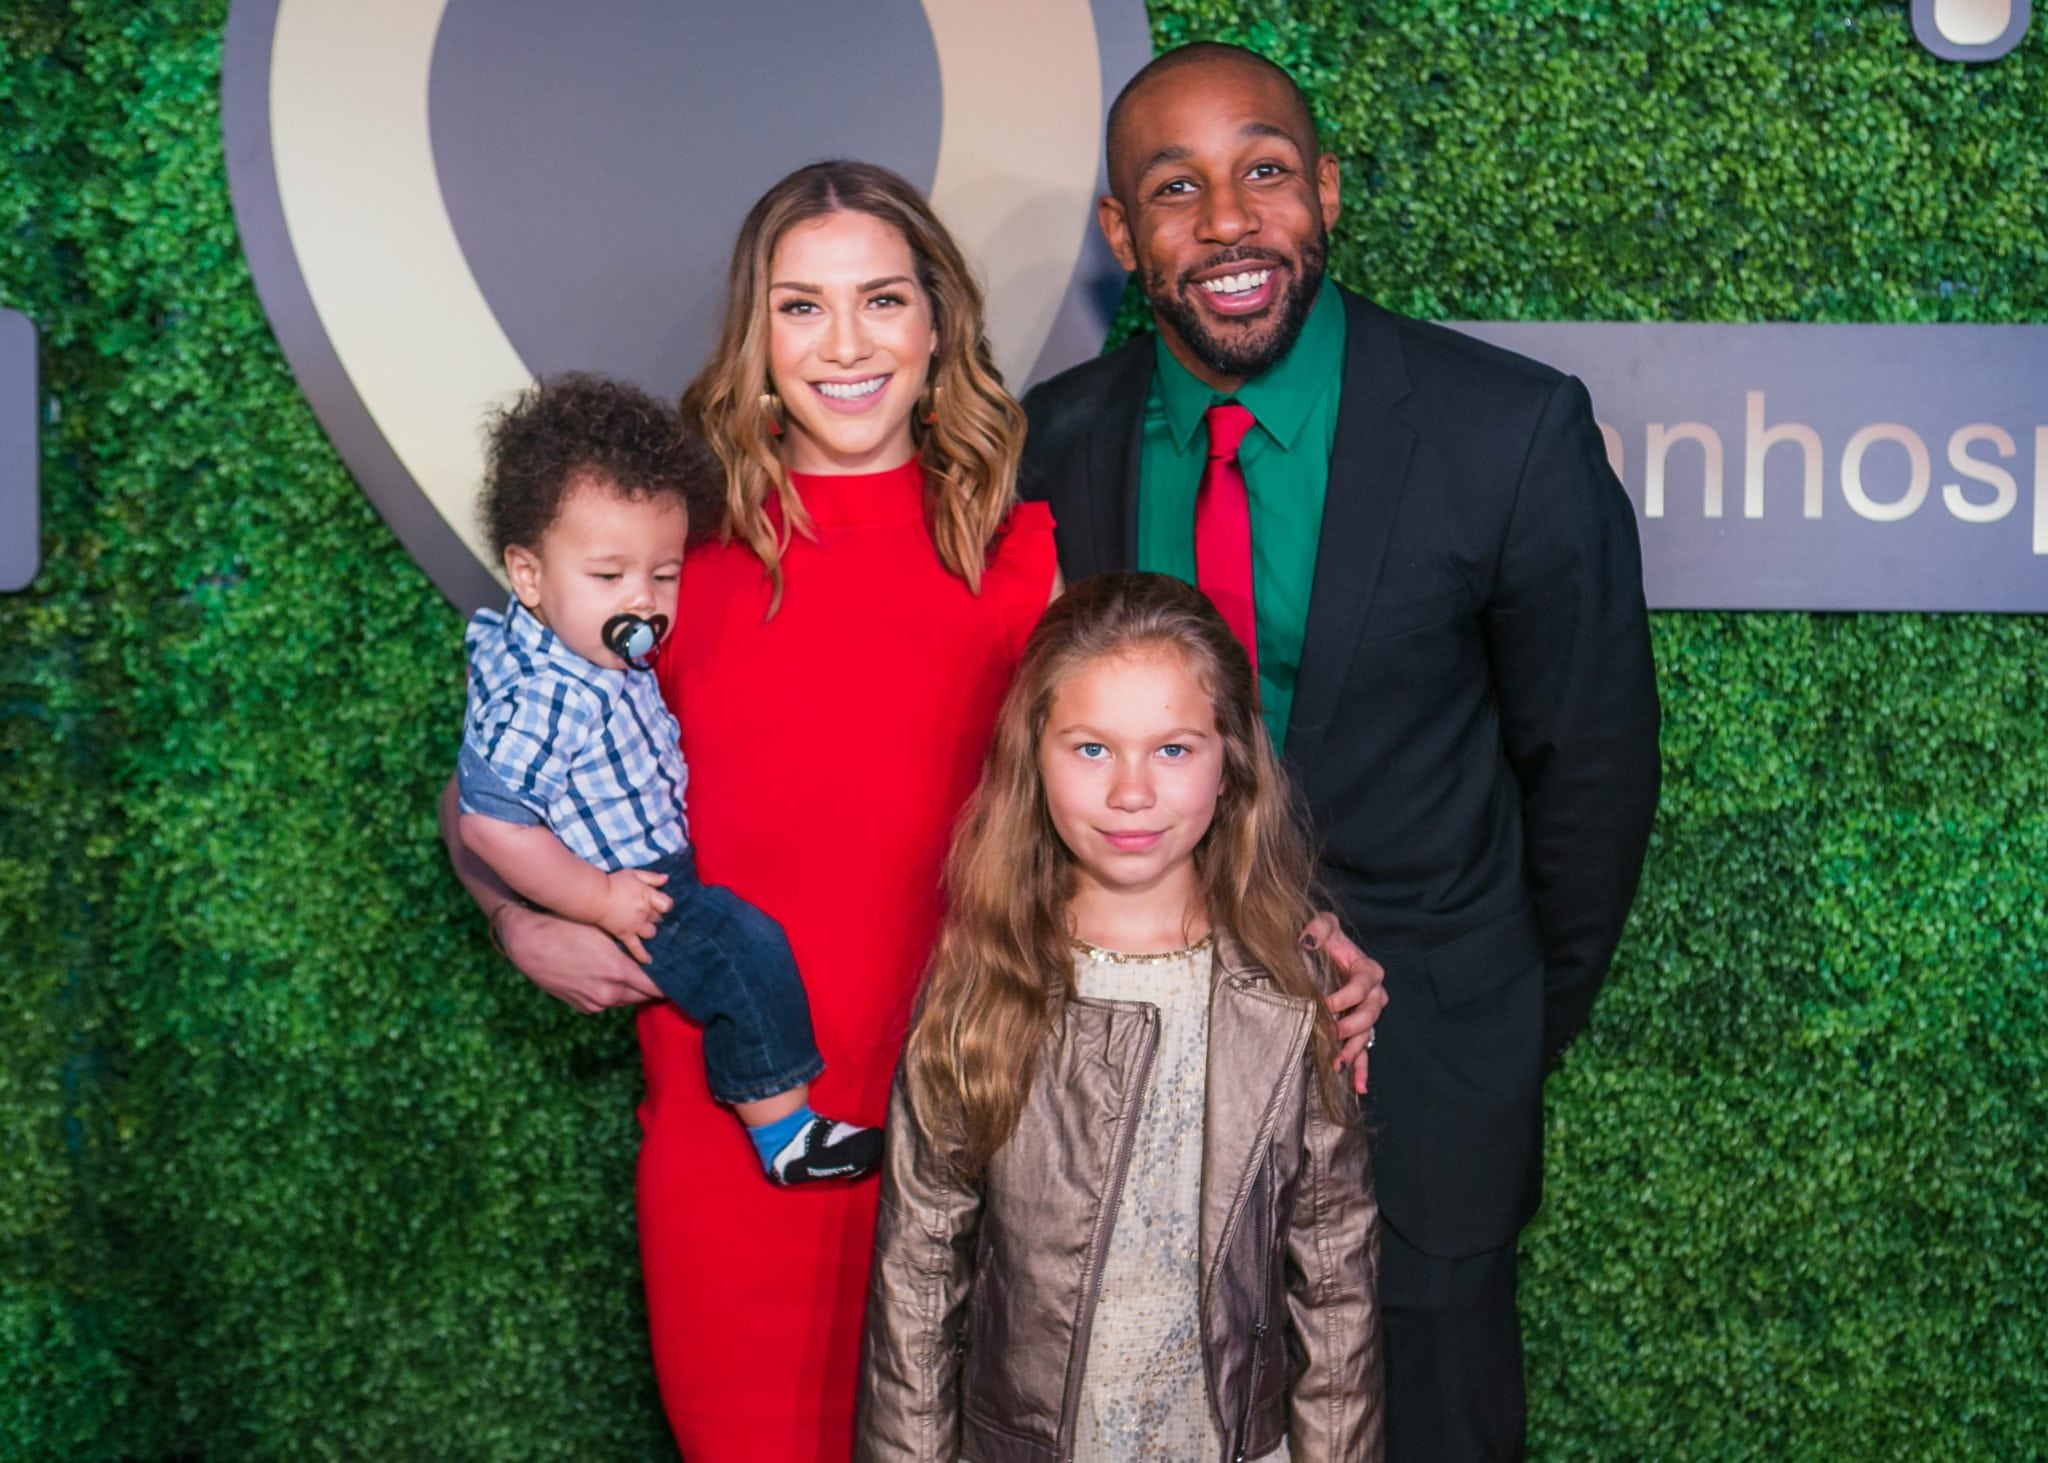 twitch dating allison Watch access interview 'stephen 'twitch' boss & allison holker talk magical moments in 'disney's fairy tale weddings'' on nbccom.